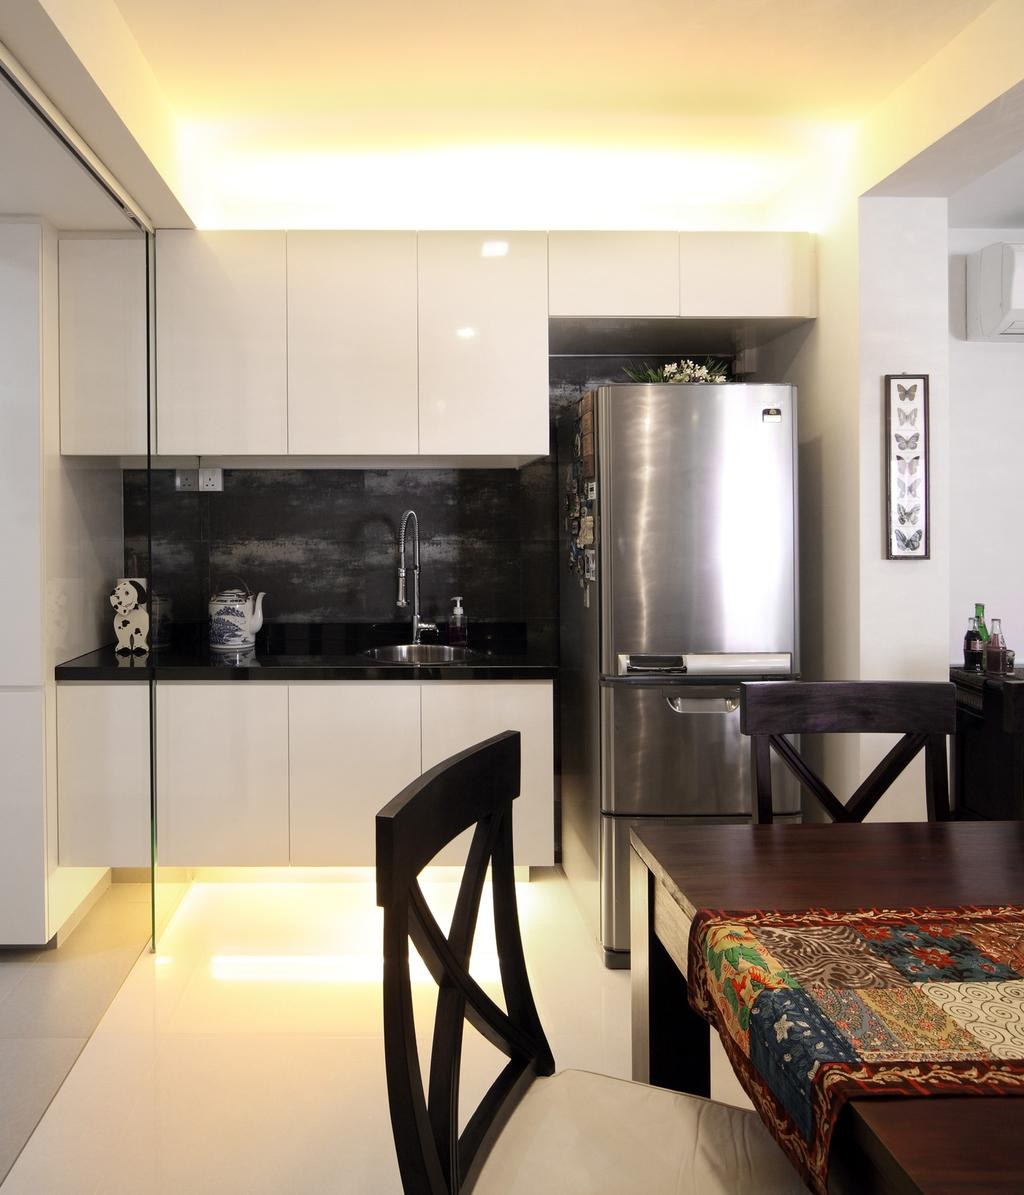 Transitional, HDB, Kitchen, Tampines Street 47, Interior Designer, Chapter One Interior Design, Concealed Lighting, White, Laminate, Kitchen Counter, Cabinet, Black, Dining Table, Table, Chair, Appliance, Electrical Device, Oven, Furniture, Indoors, Interior Design, Room